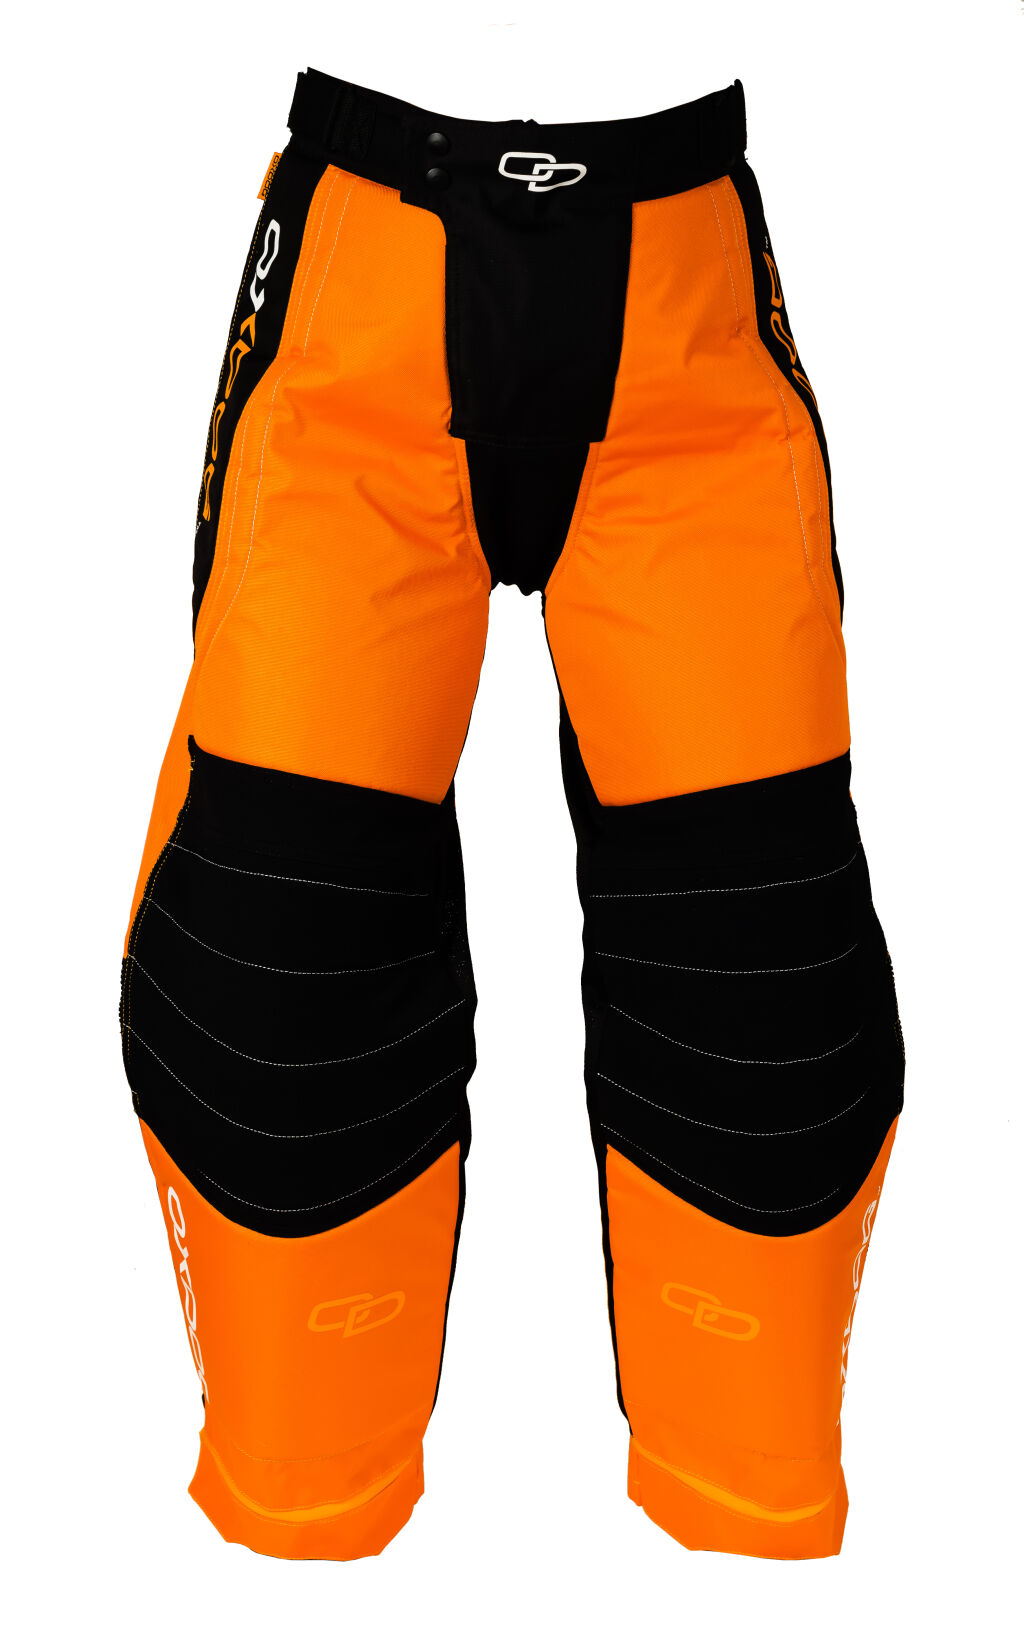 Oxdog Tour goalie pants orange/blk